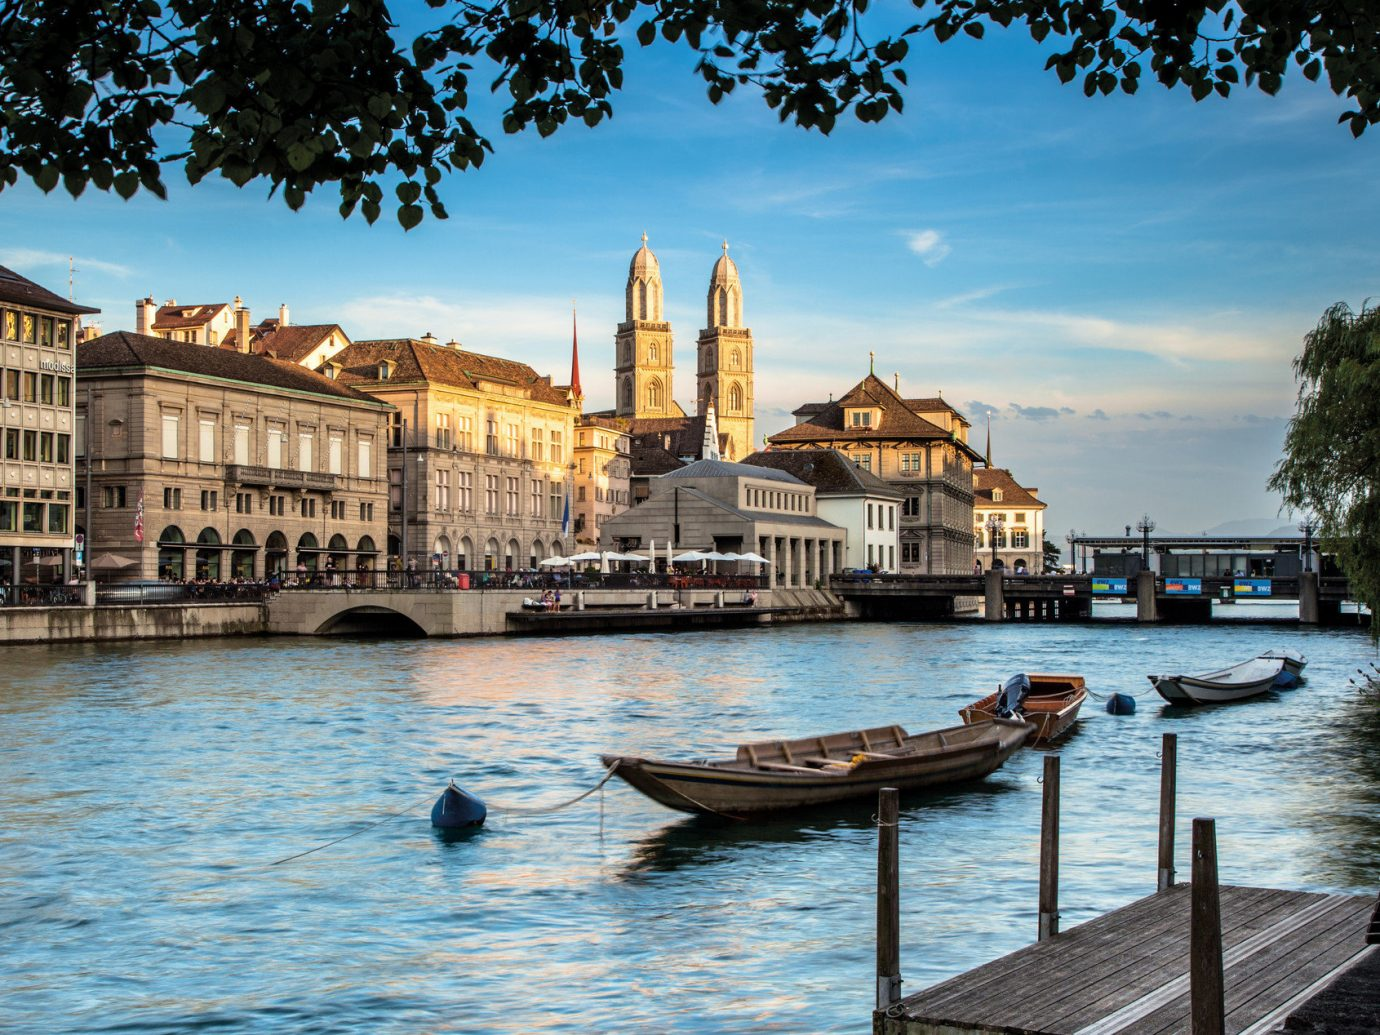 Architecture Boats Buildings City city views Waterfront water outdoor sky Boat scene landmark Town River vacation tourism reflection vehicle Sea evening Harbor cityscape waterway palace bay travel dock several